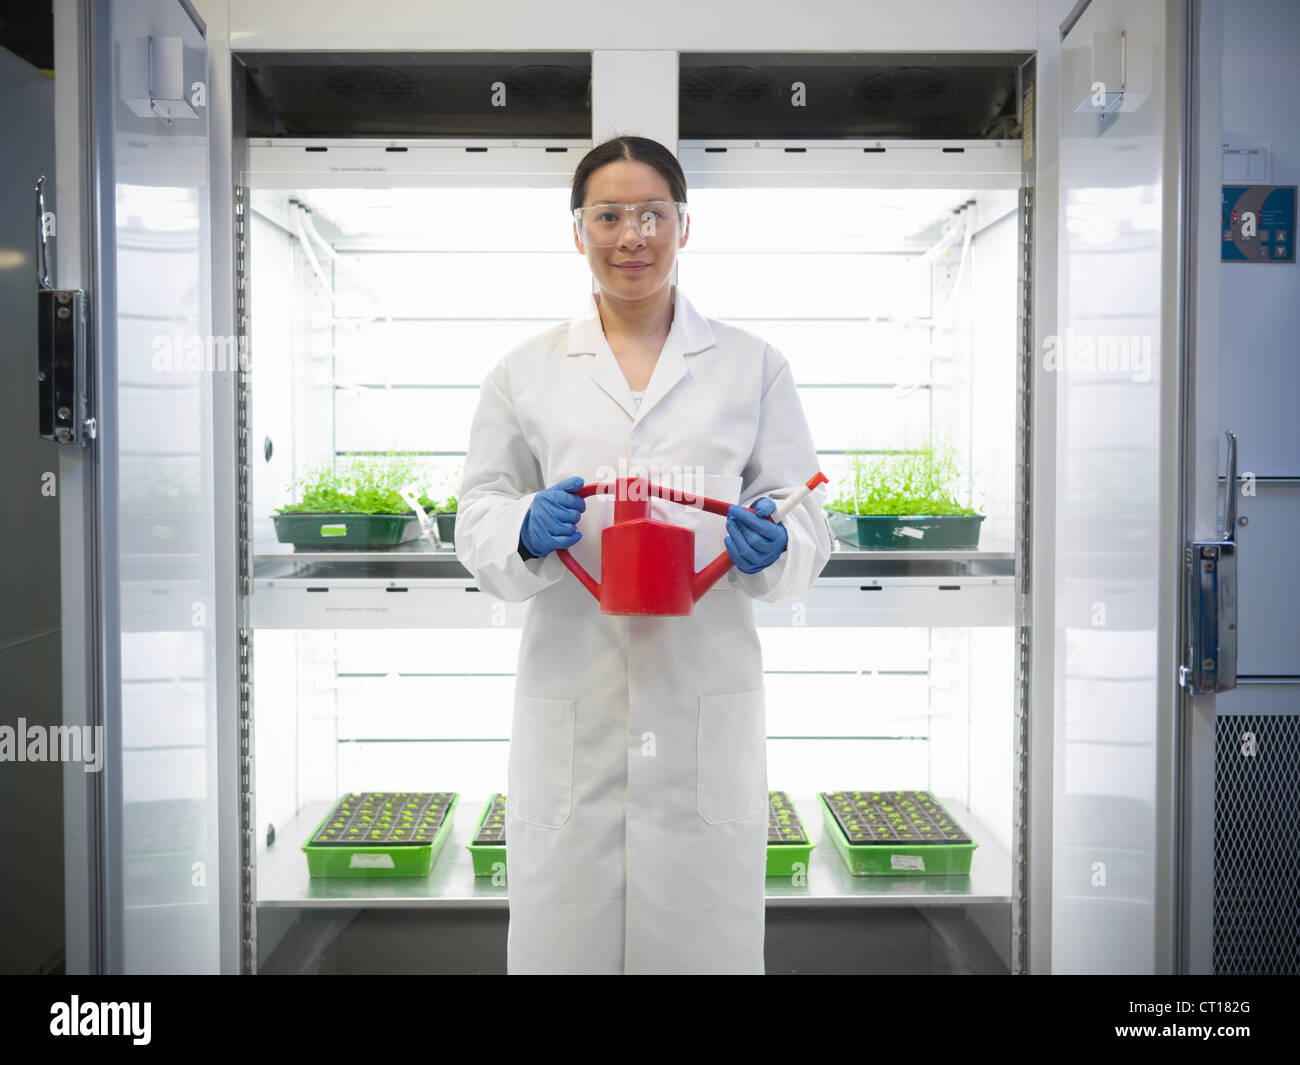 Scientist watering plants in container - Stock Image